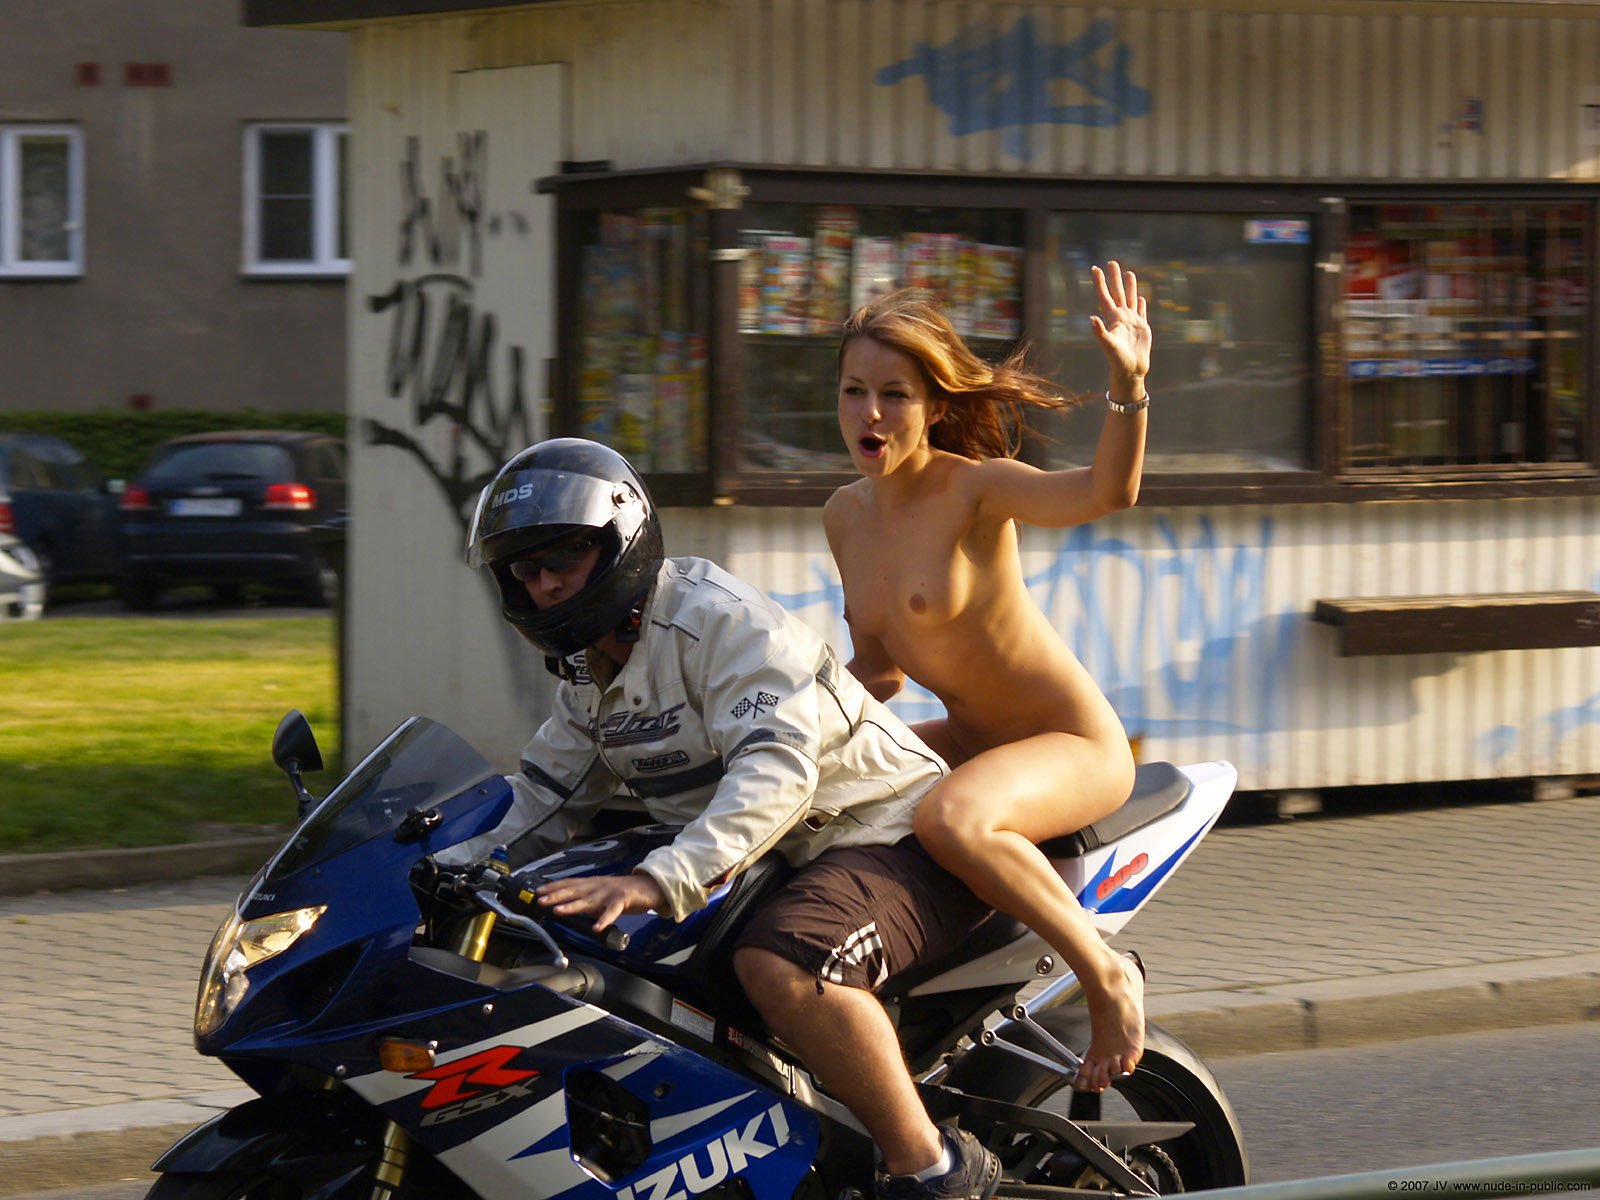 naked-girls-in-public-mix-vol5-48